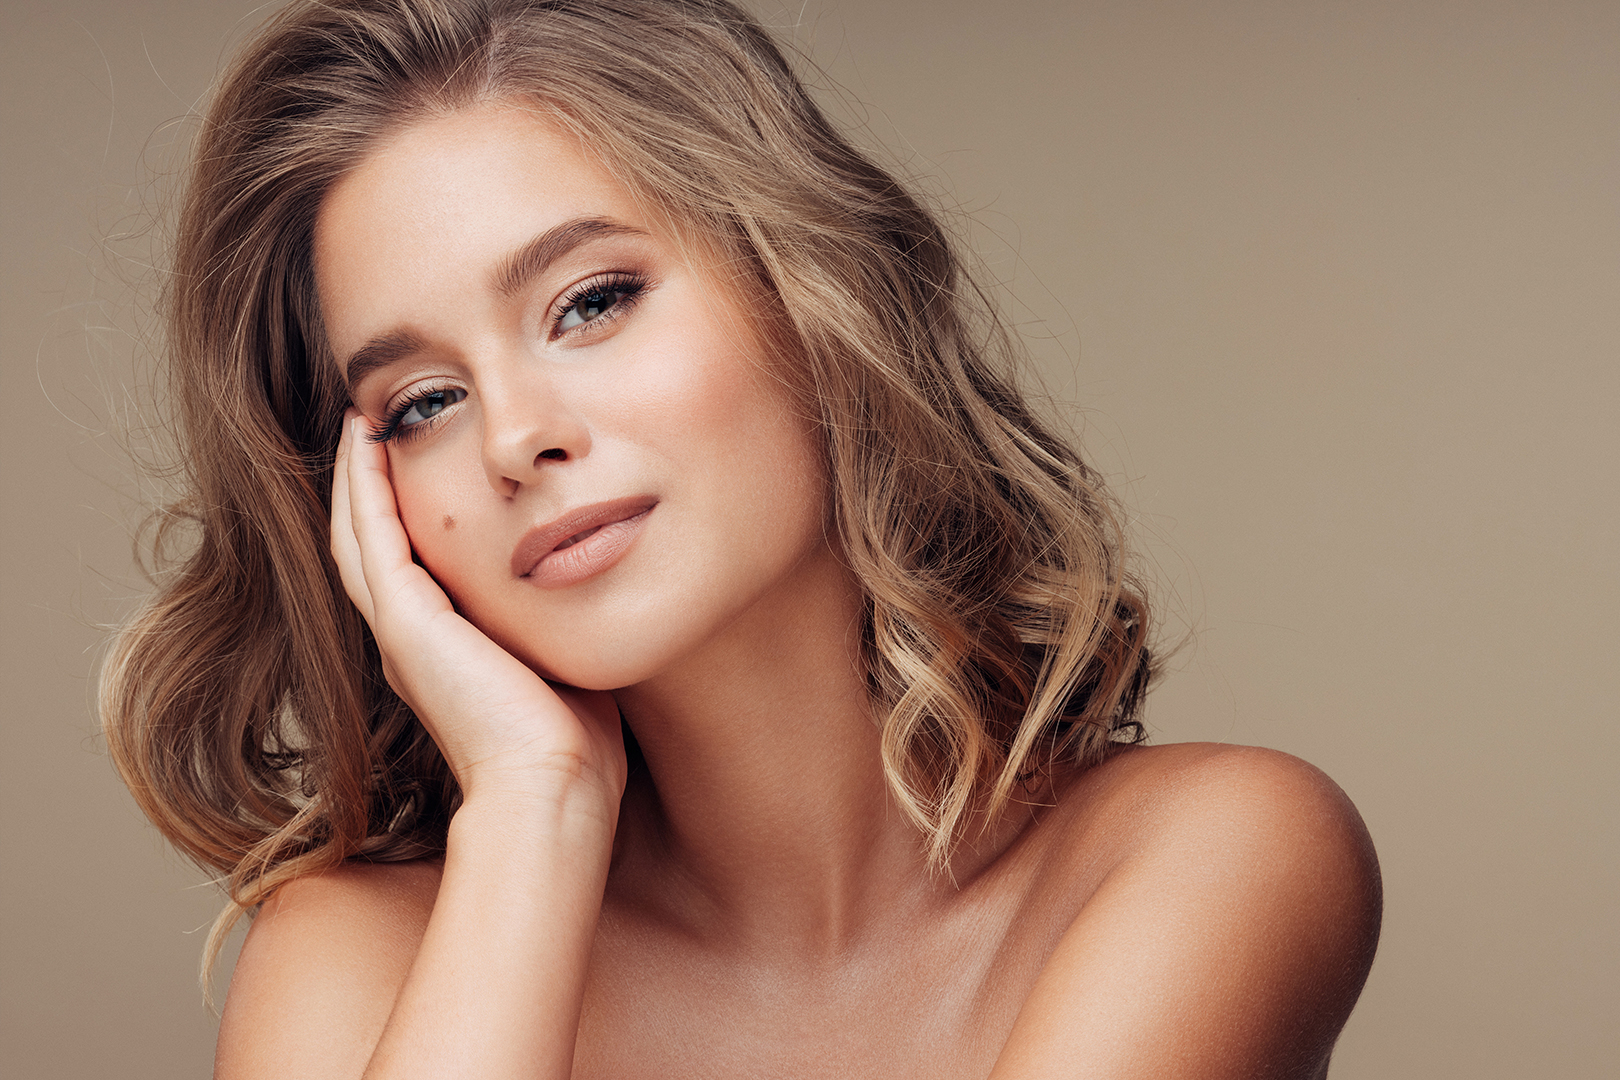 """CARBON PEEL - Known as the """"Hollywood Peel"""" this revolutionary laser treatment is completely painless, requires no downtime and will benefit any skin, especially those with excess oil and congestion. Exfoliate, rejuvenate and refresh your skin with instant results!Single treatment $350"""